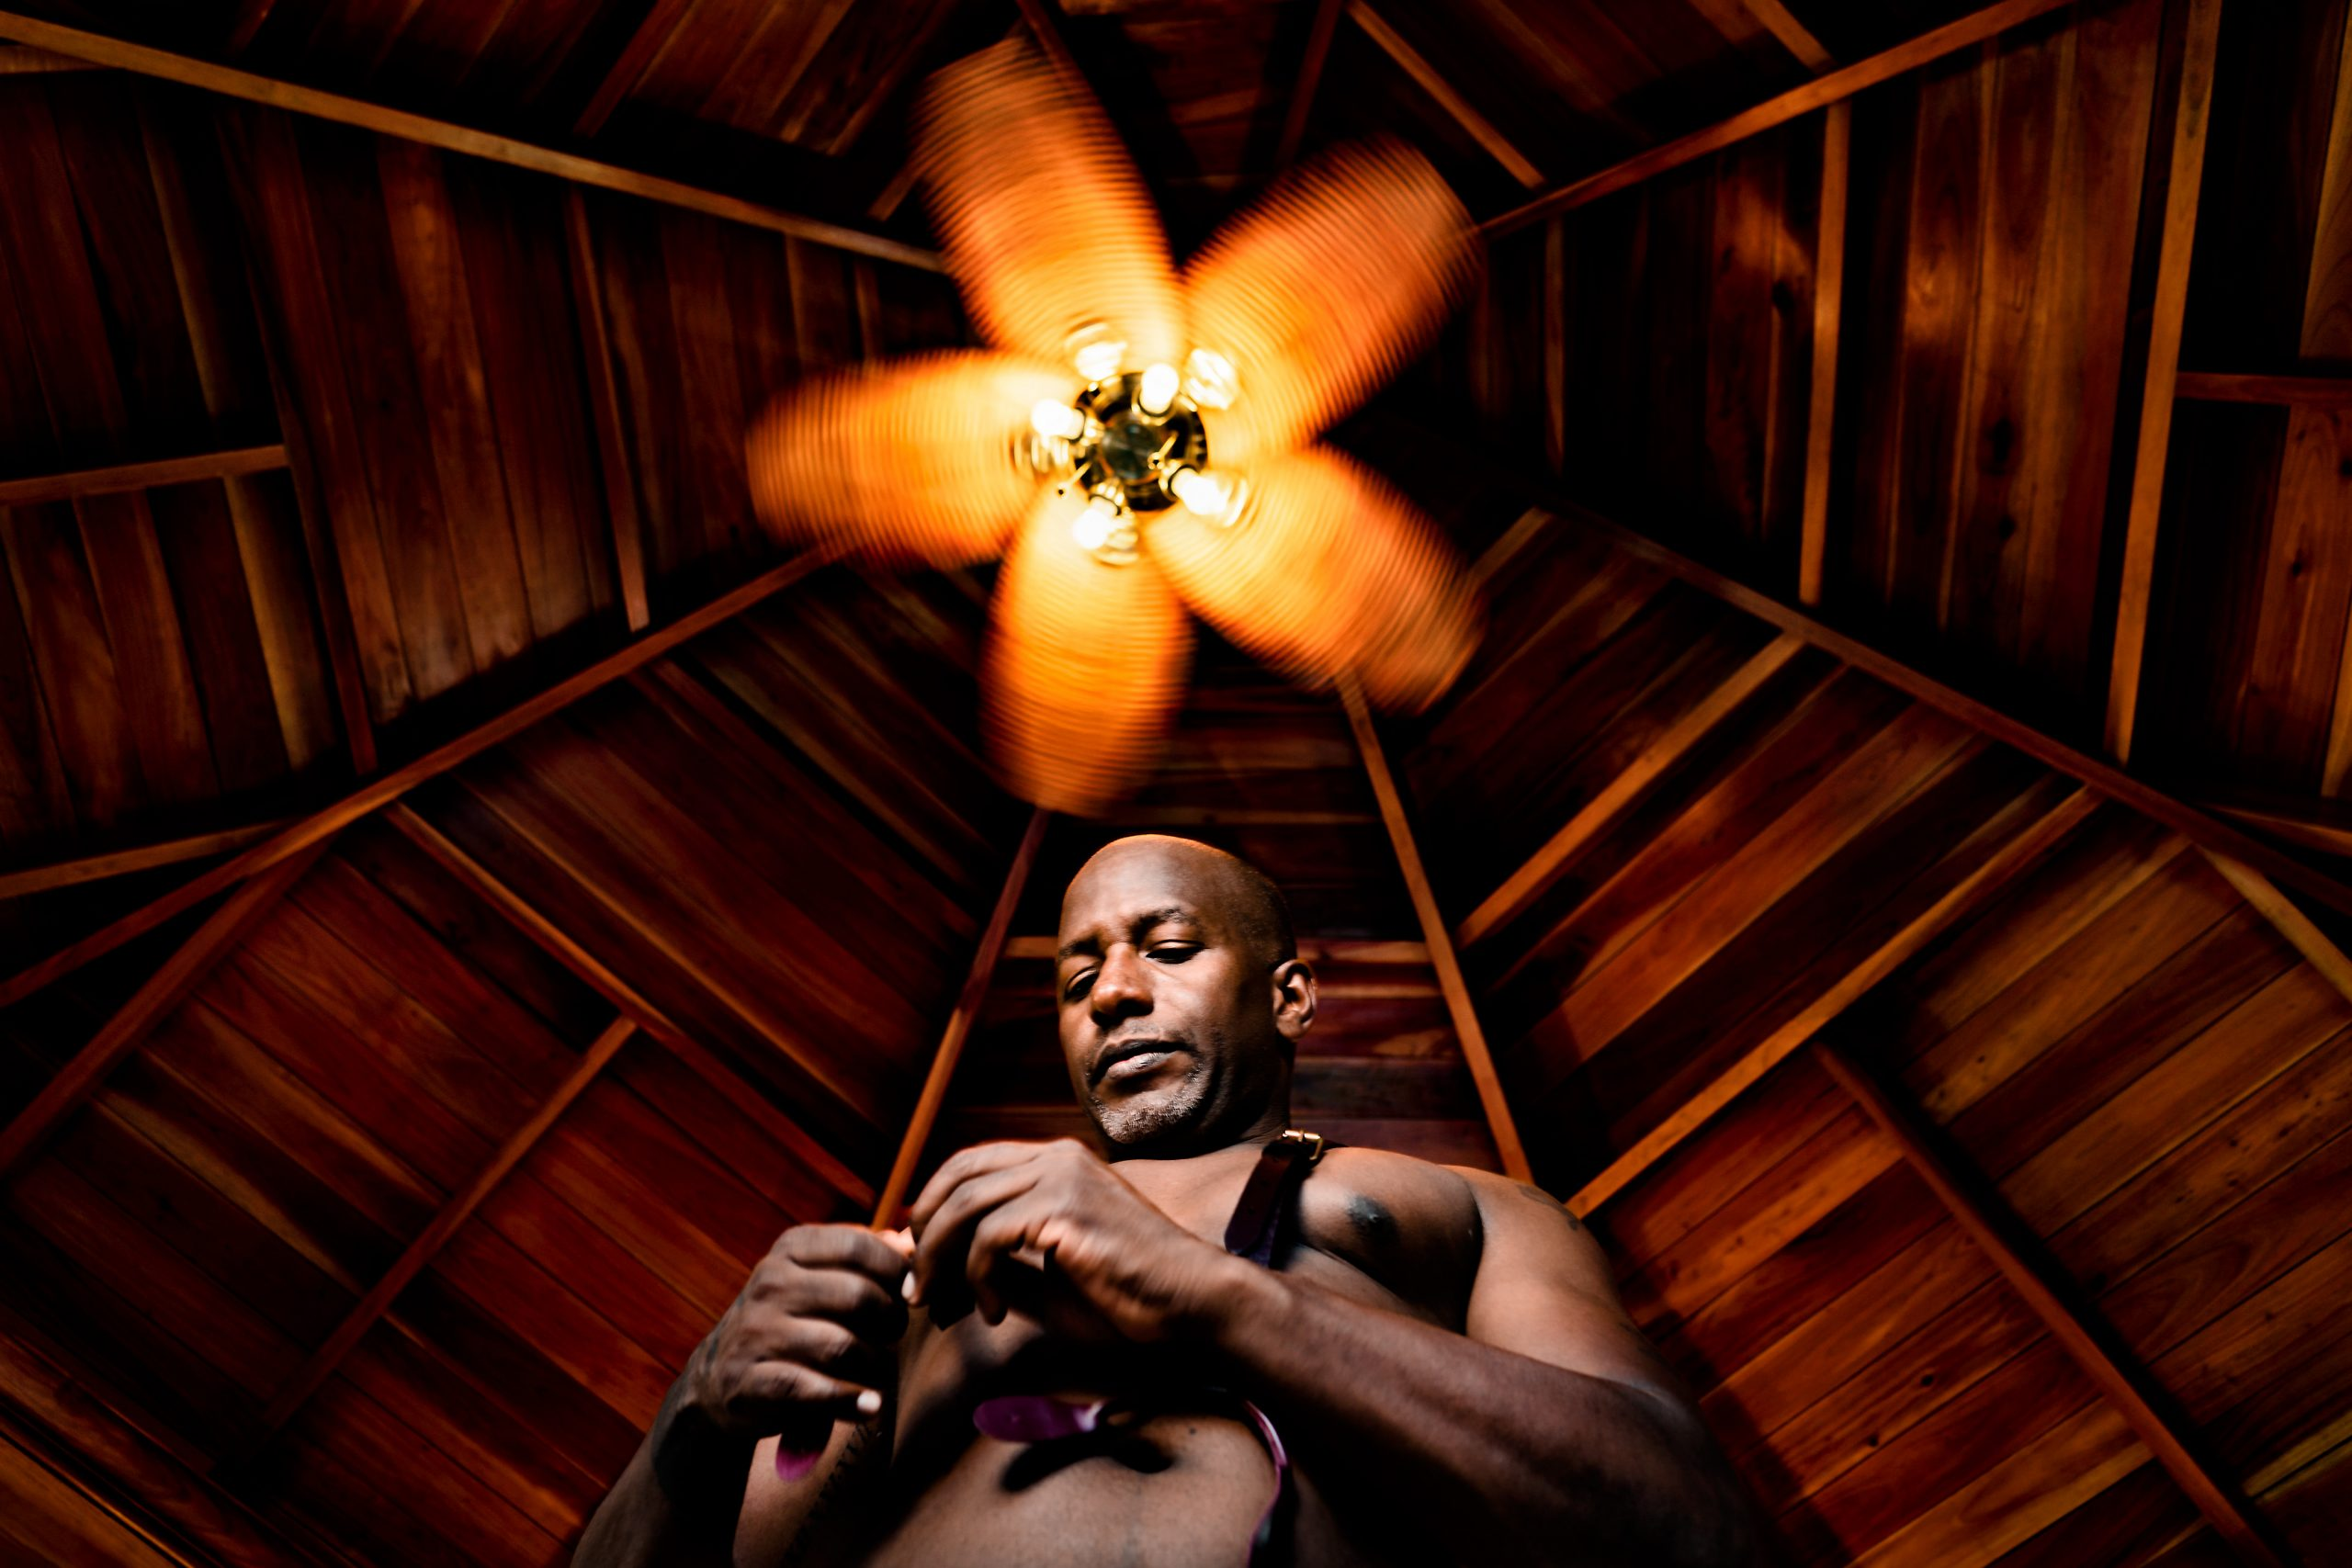 Man gets dressed to the backdrop of a wooden ceiling fan.